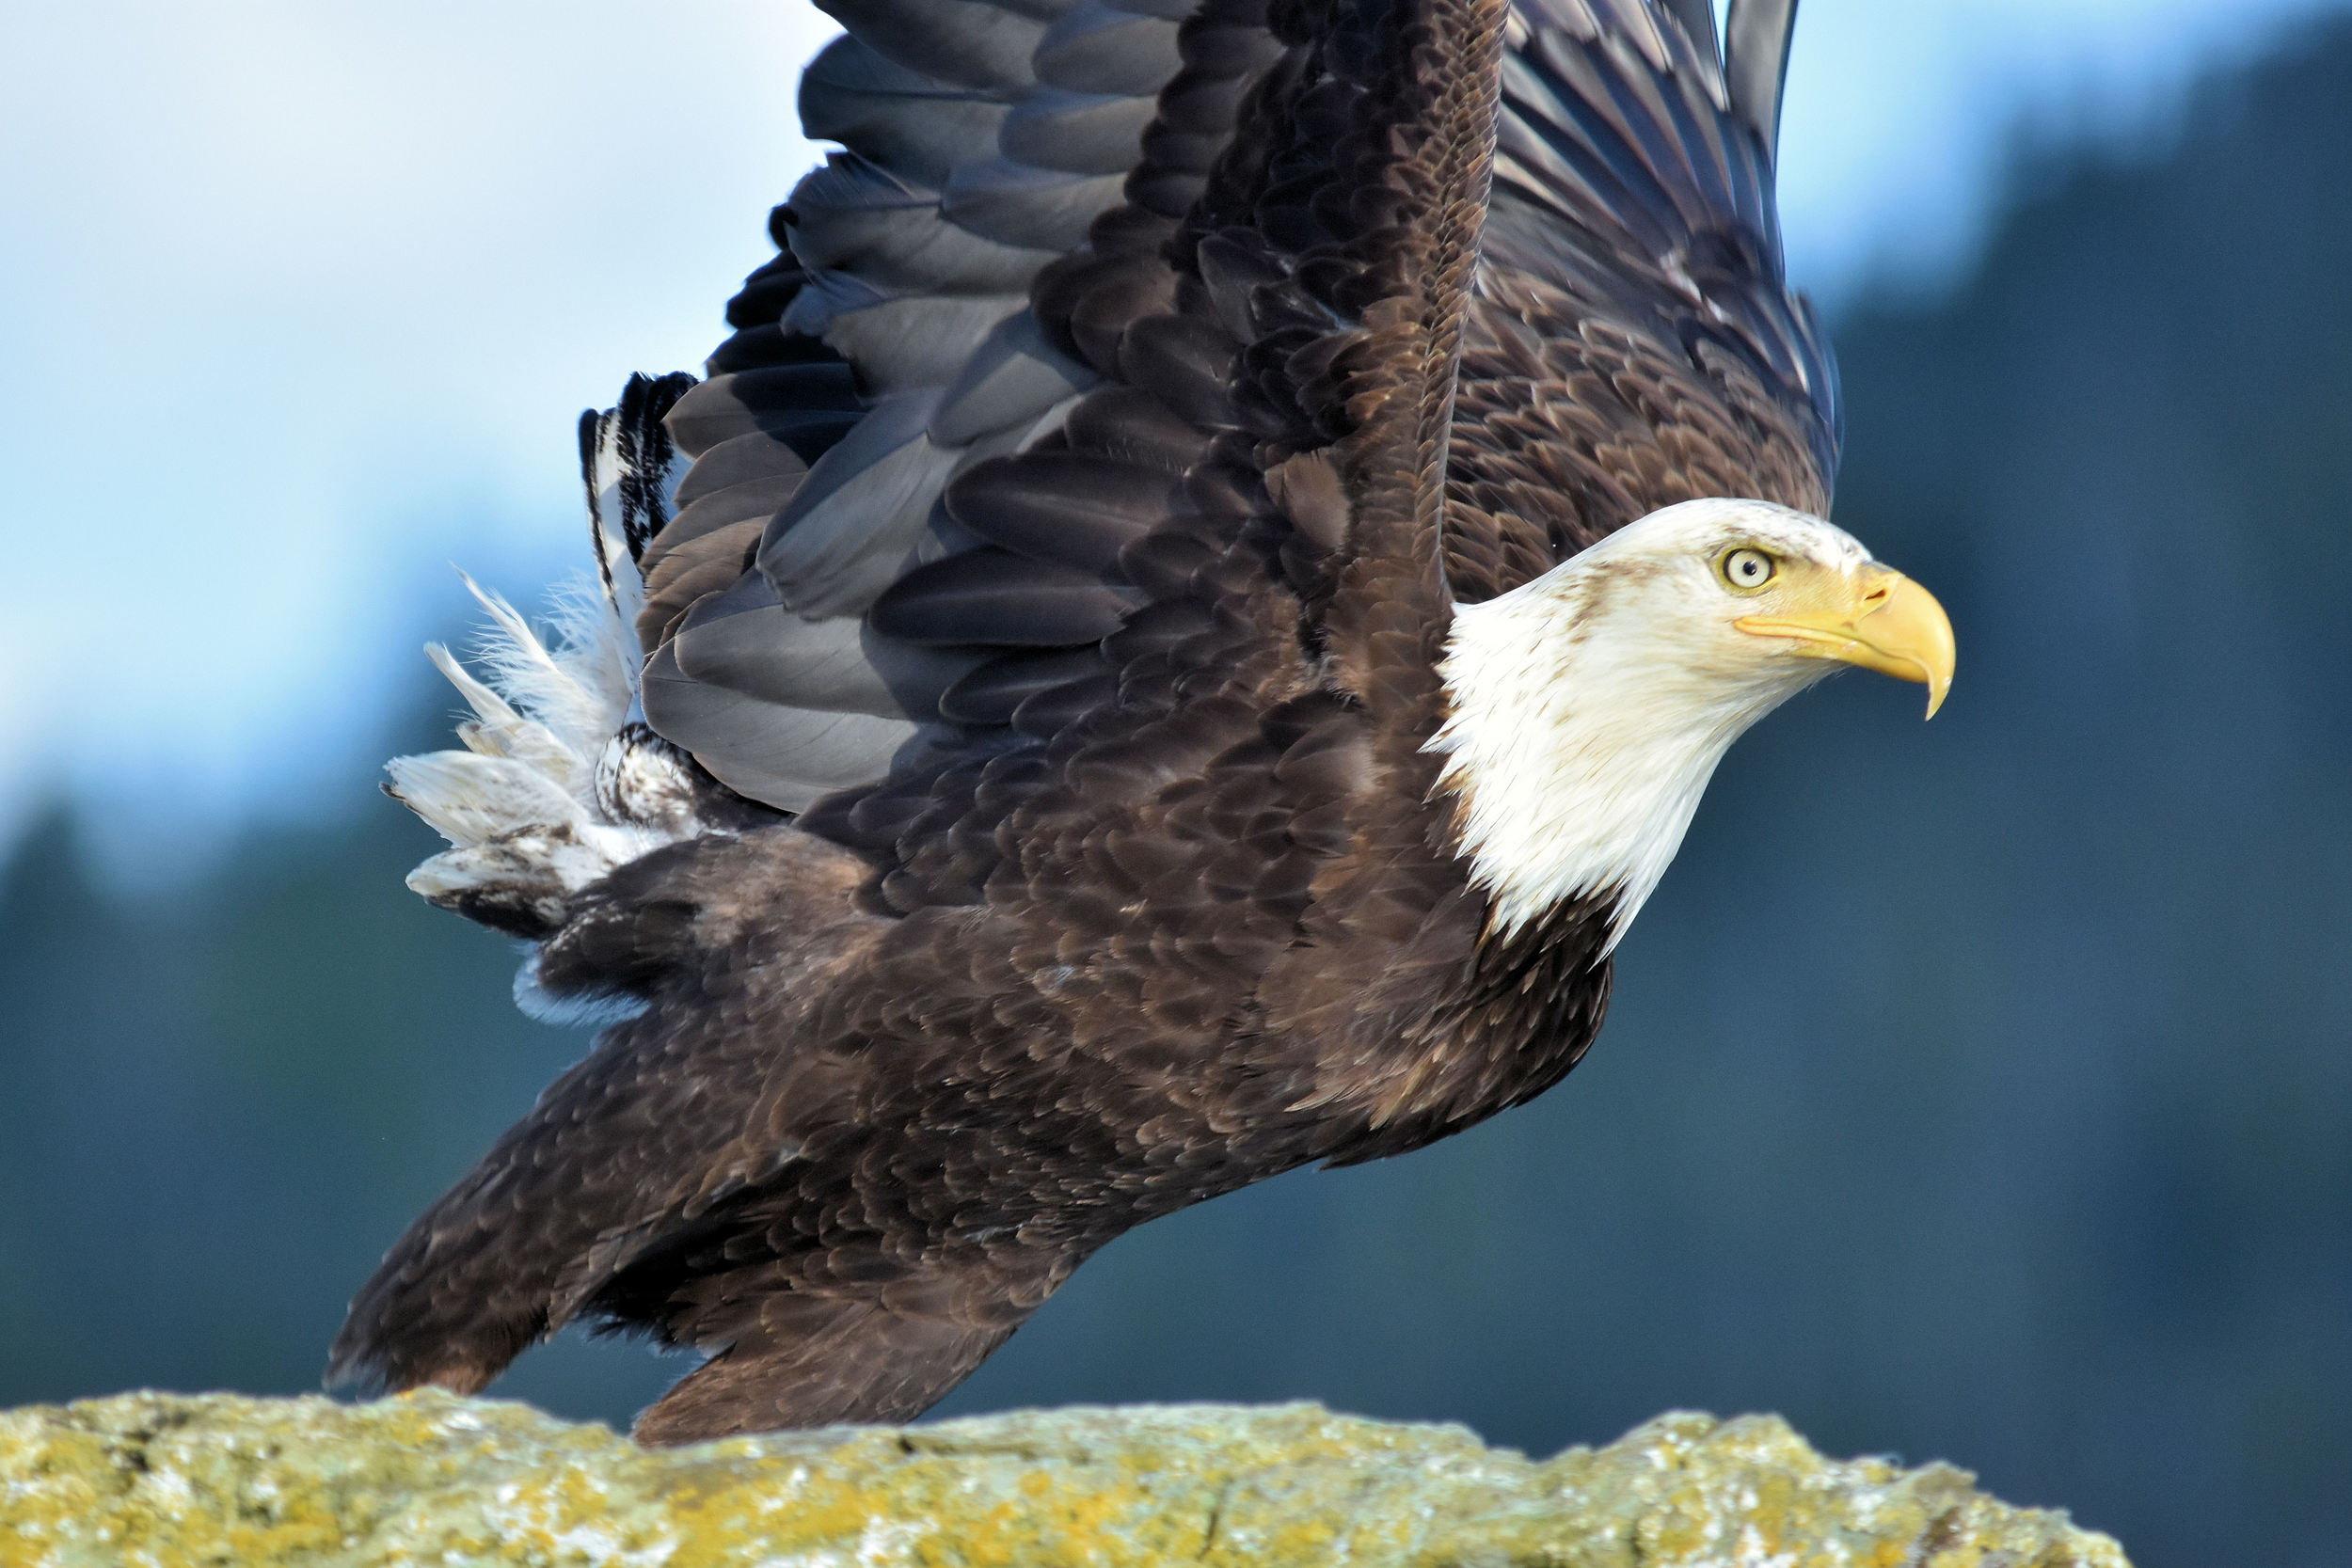 Too close for comfort: a bald eagle gets ready for take-off from his perch on a rocky outcropping south of Ketchikan, Alaska